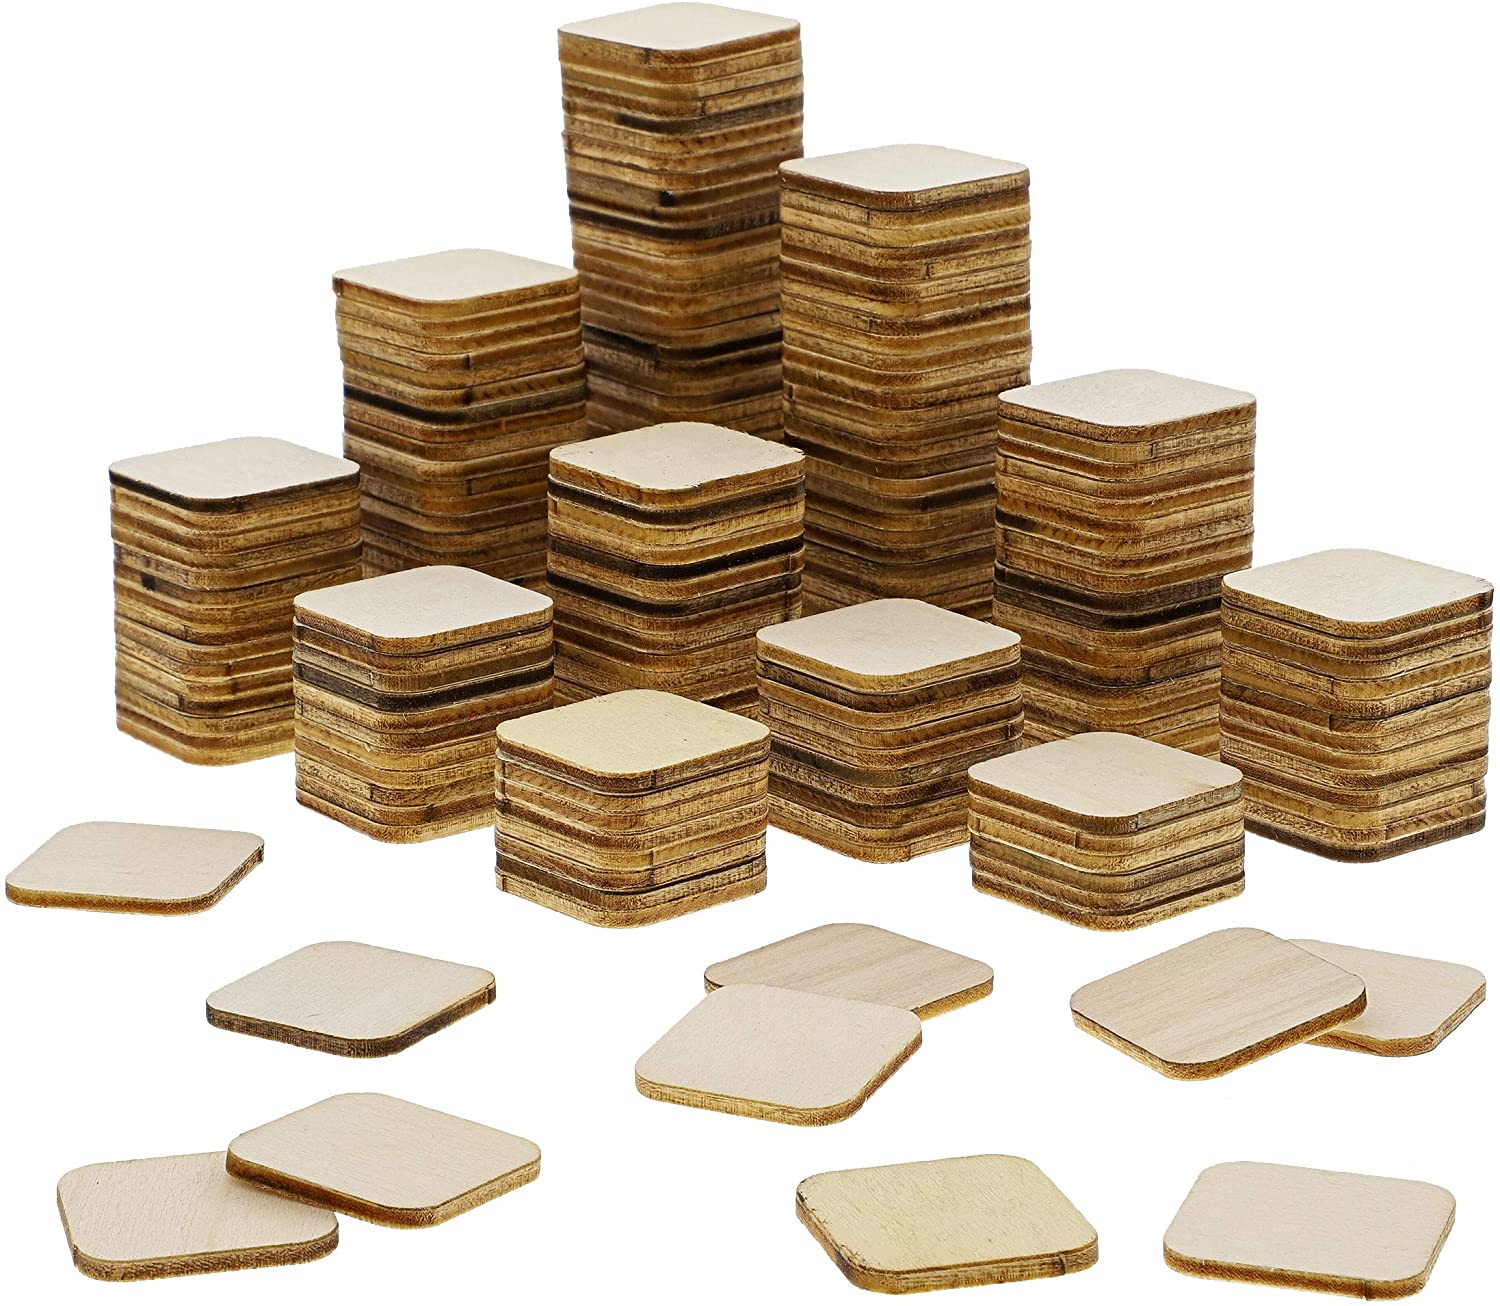 Bright Creations 200-Pack Unfinished Wood Square Tile Cutouts for DIY Crafts, 1 x 1 Inches